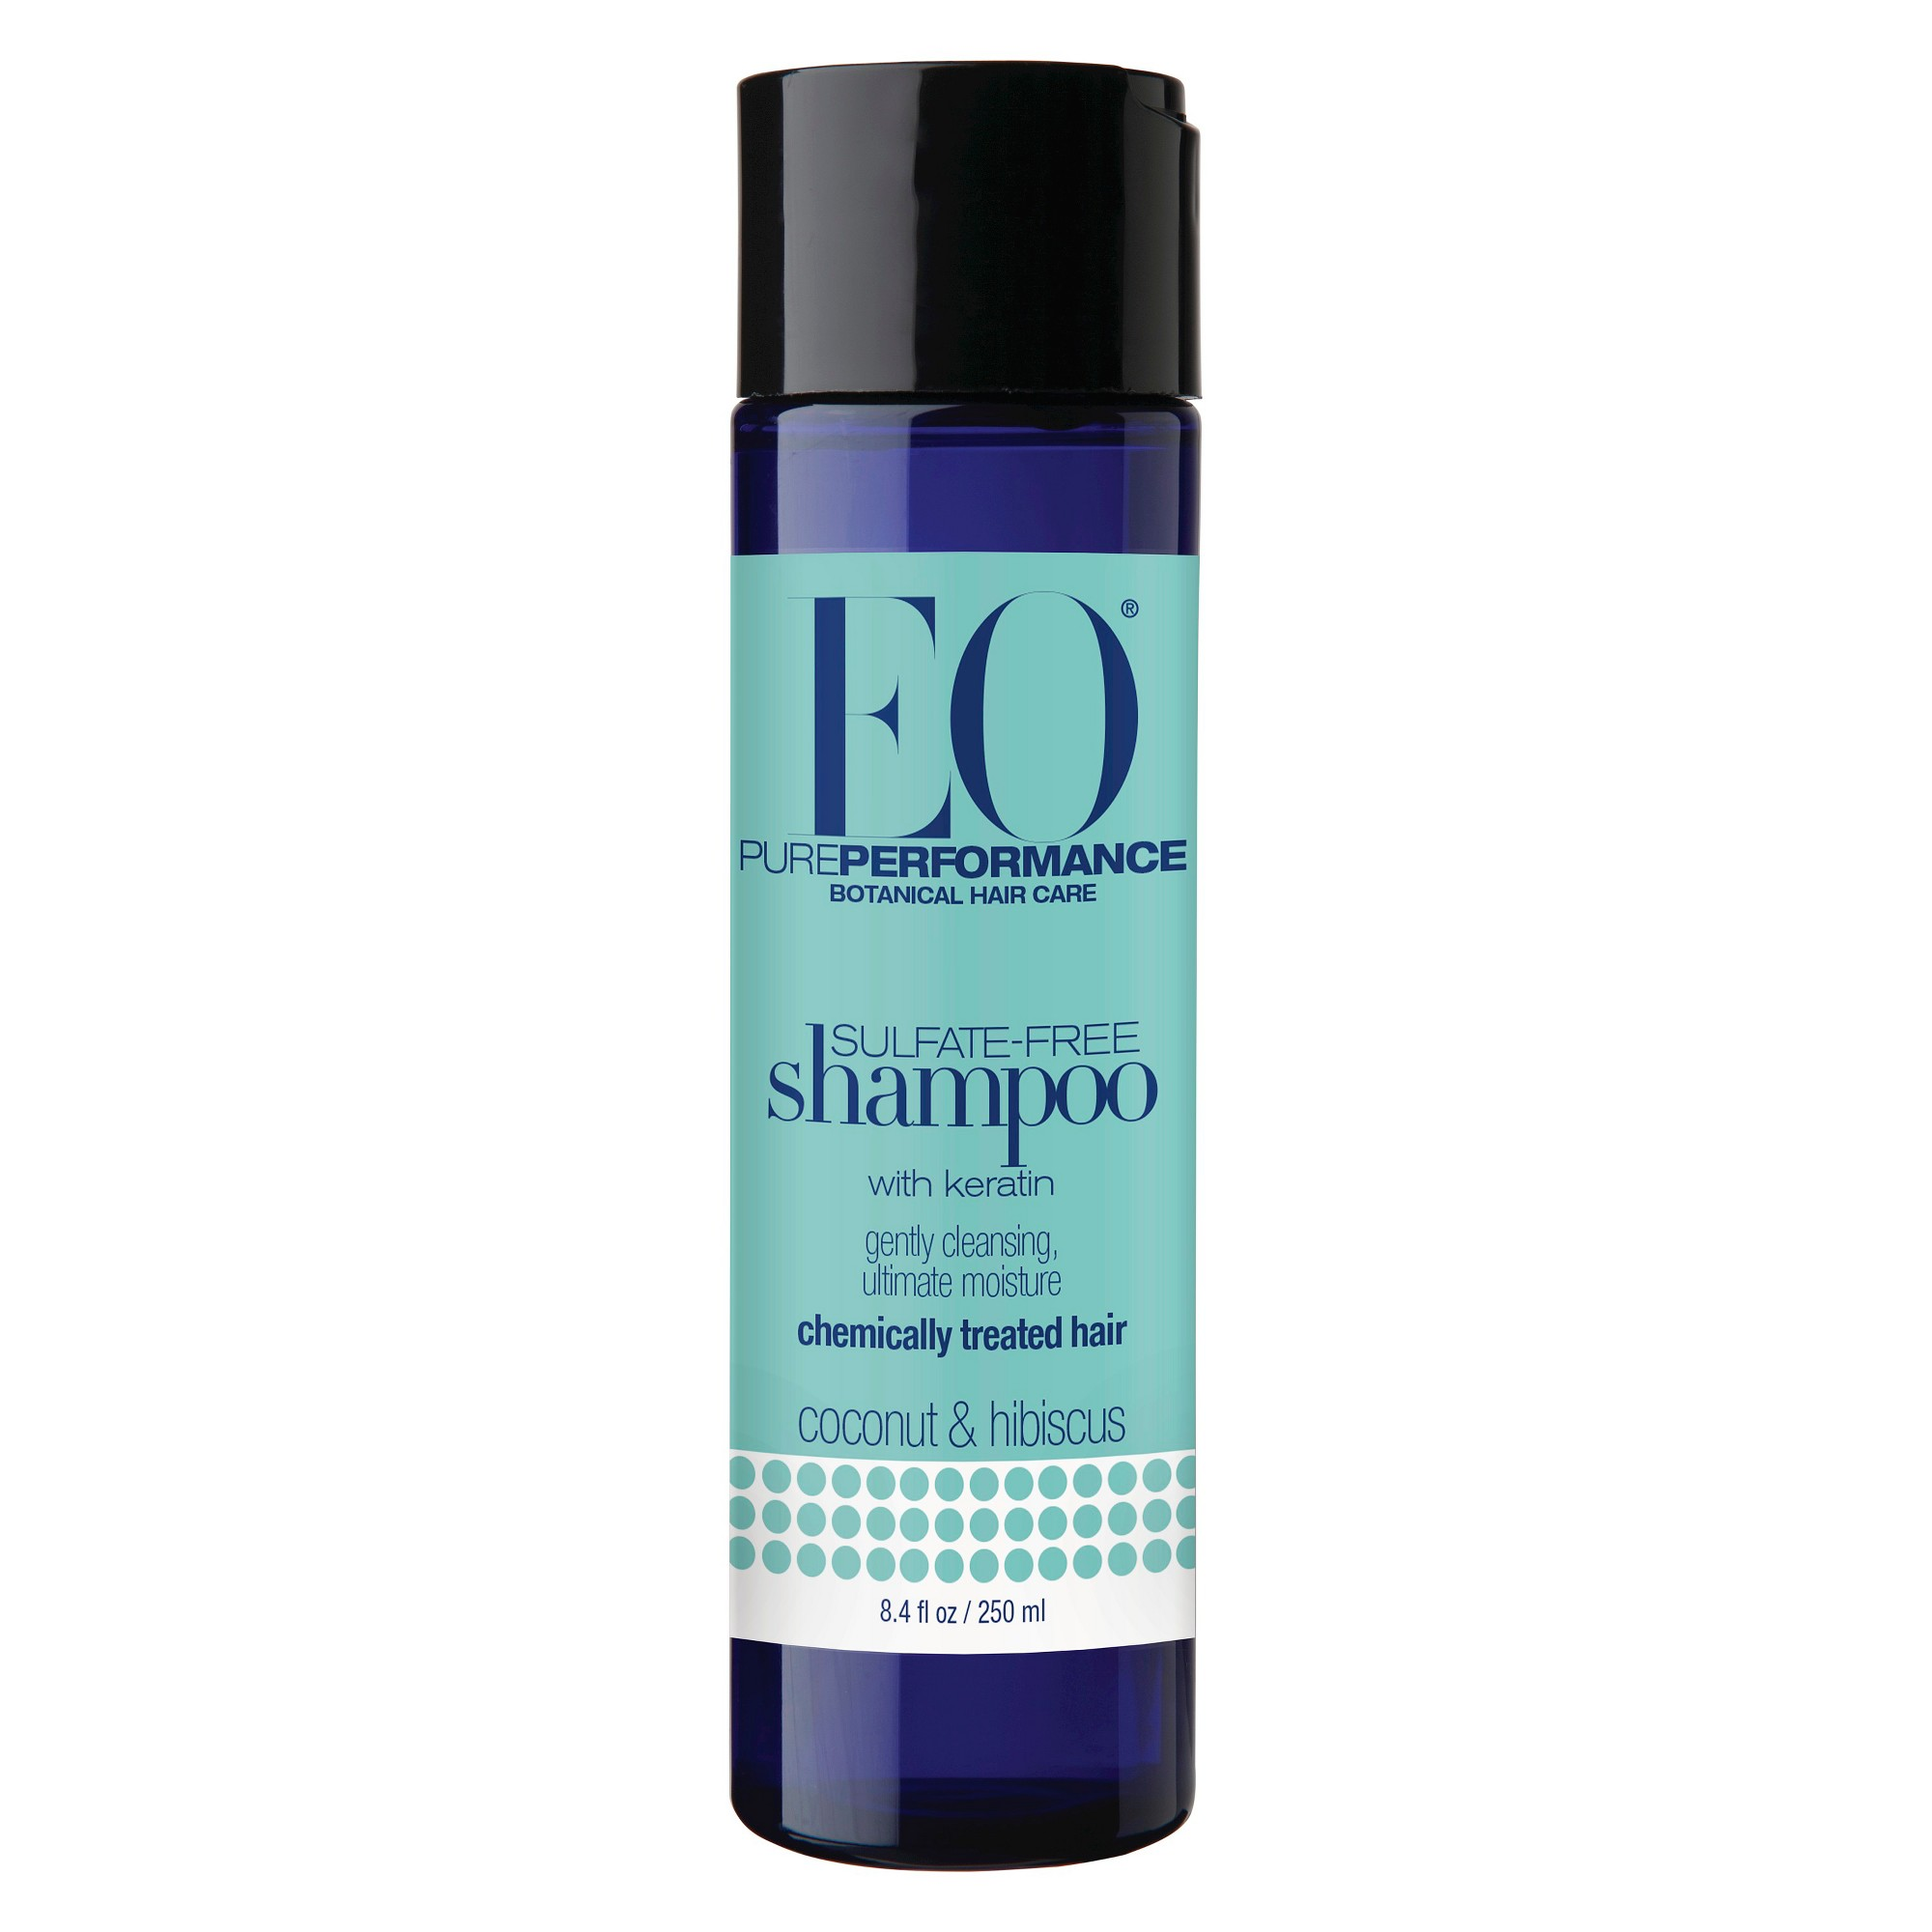 EO SulfateFree Shampoo for Chemically Treated Hair